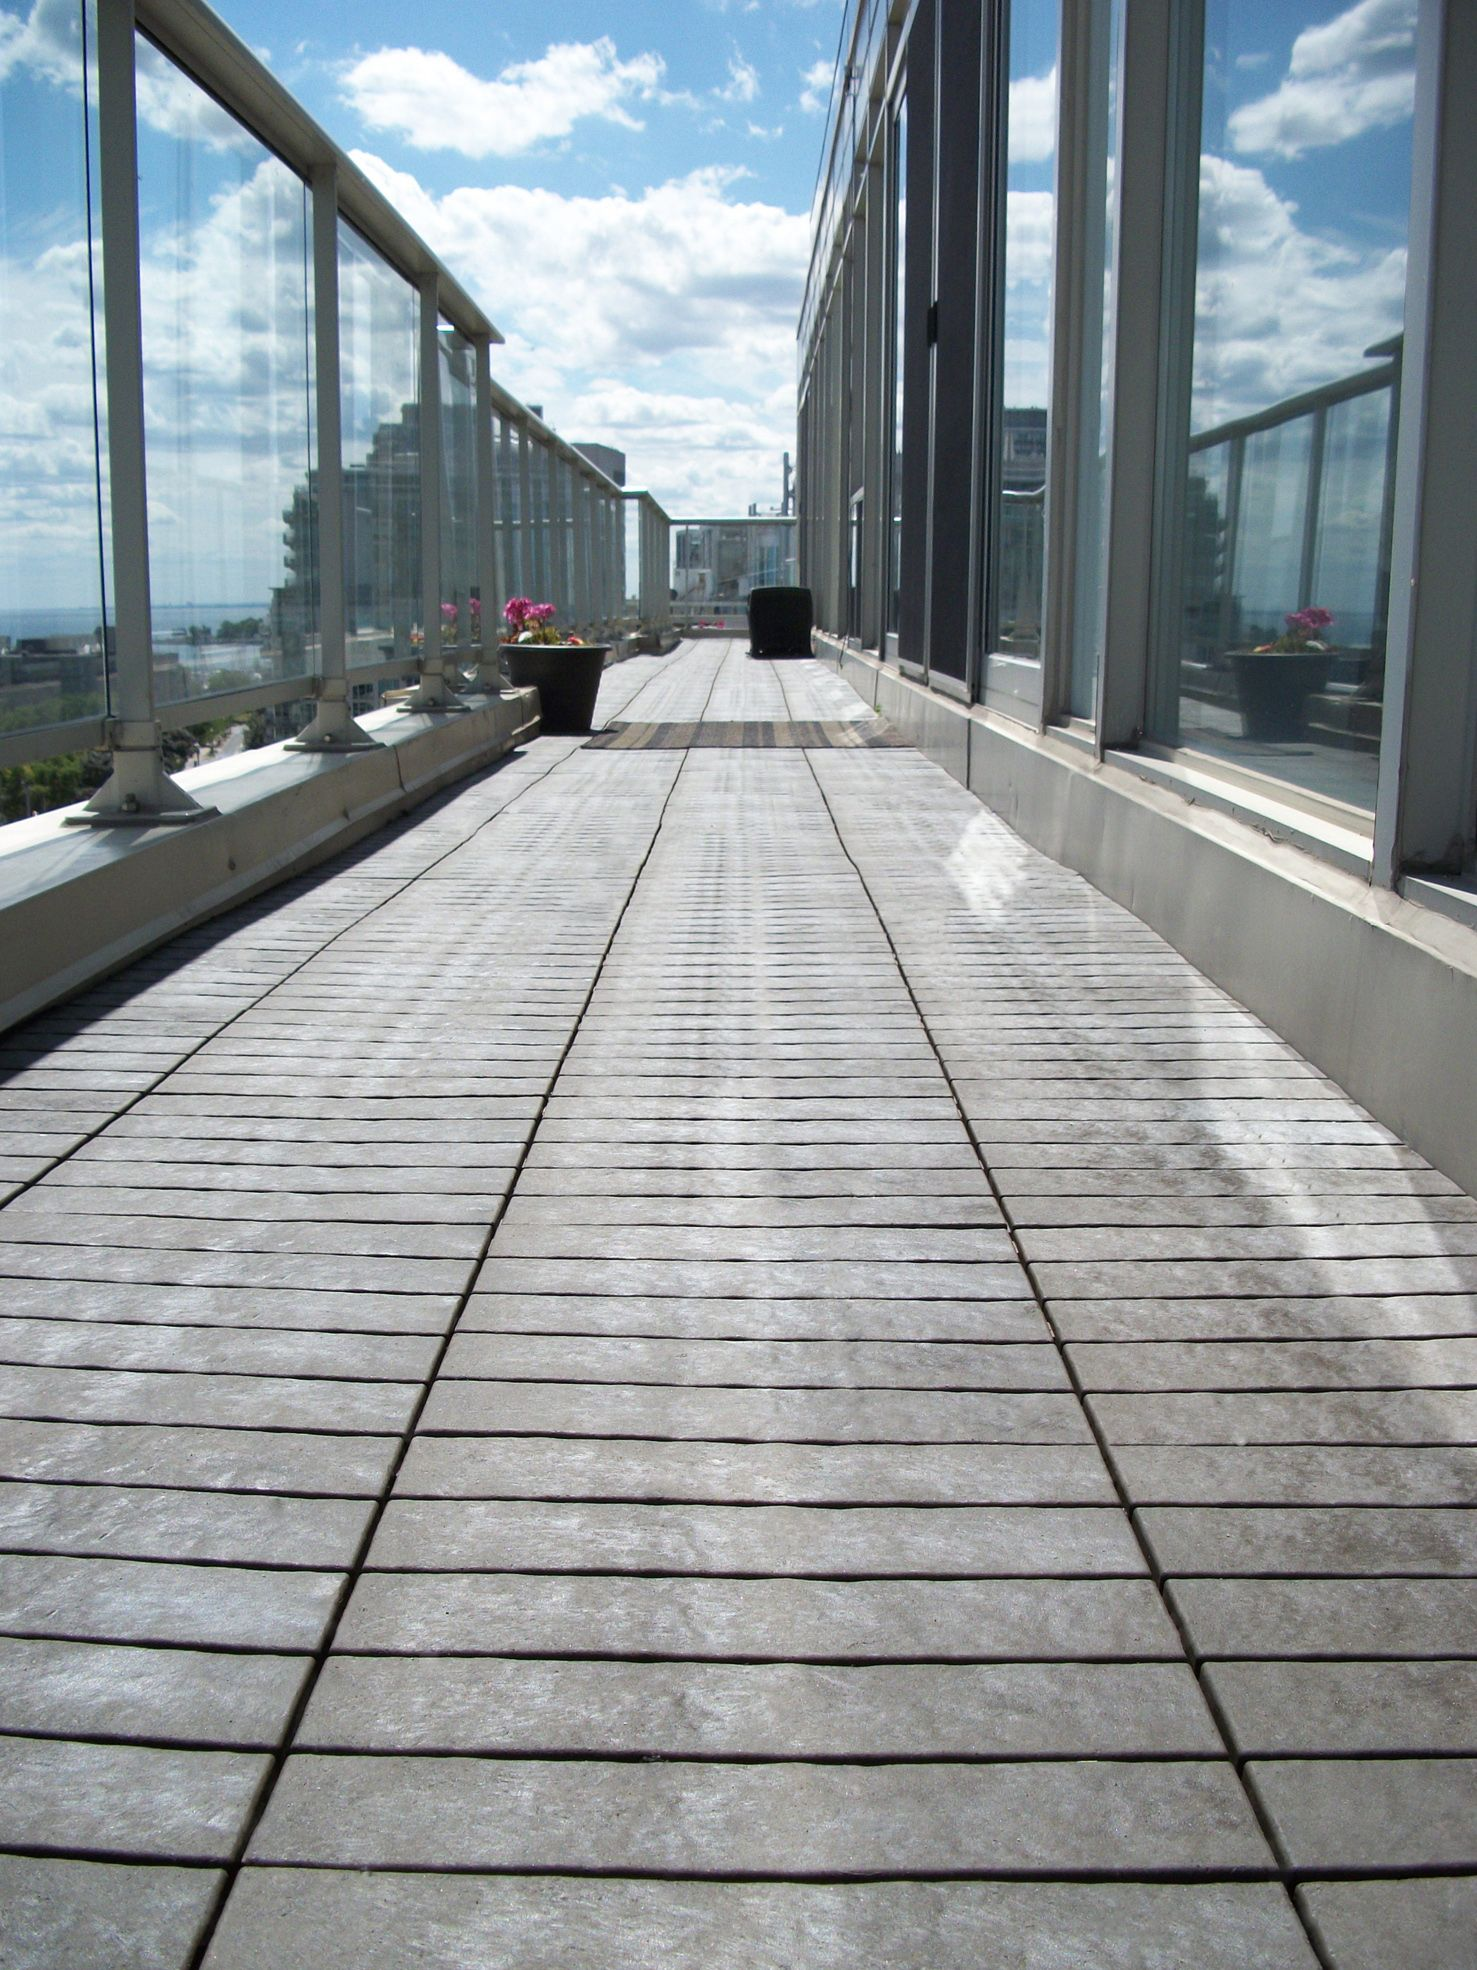 Wonderful Mouse Eye View Of Our Beautiful Coffee Brown Outdoor Floor Decking Tiles. We